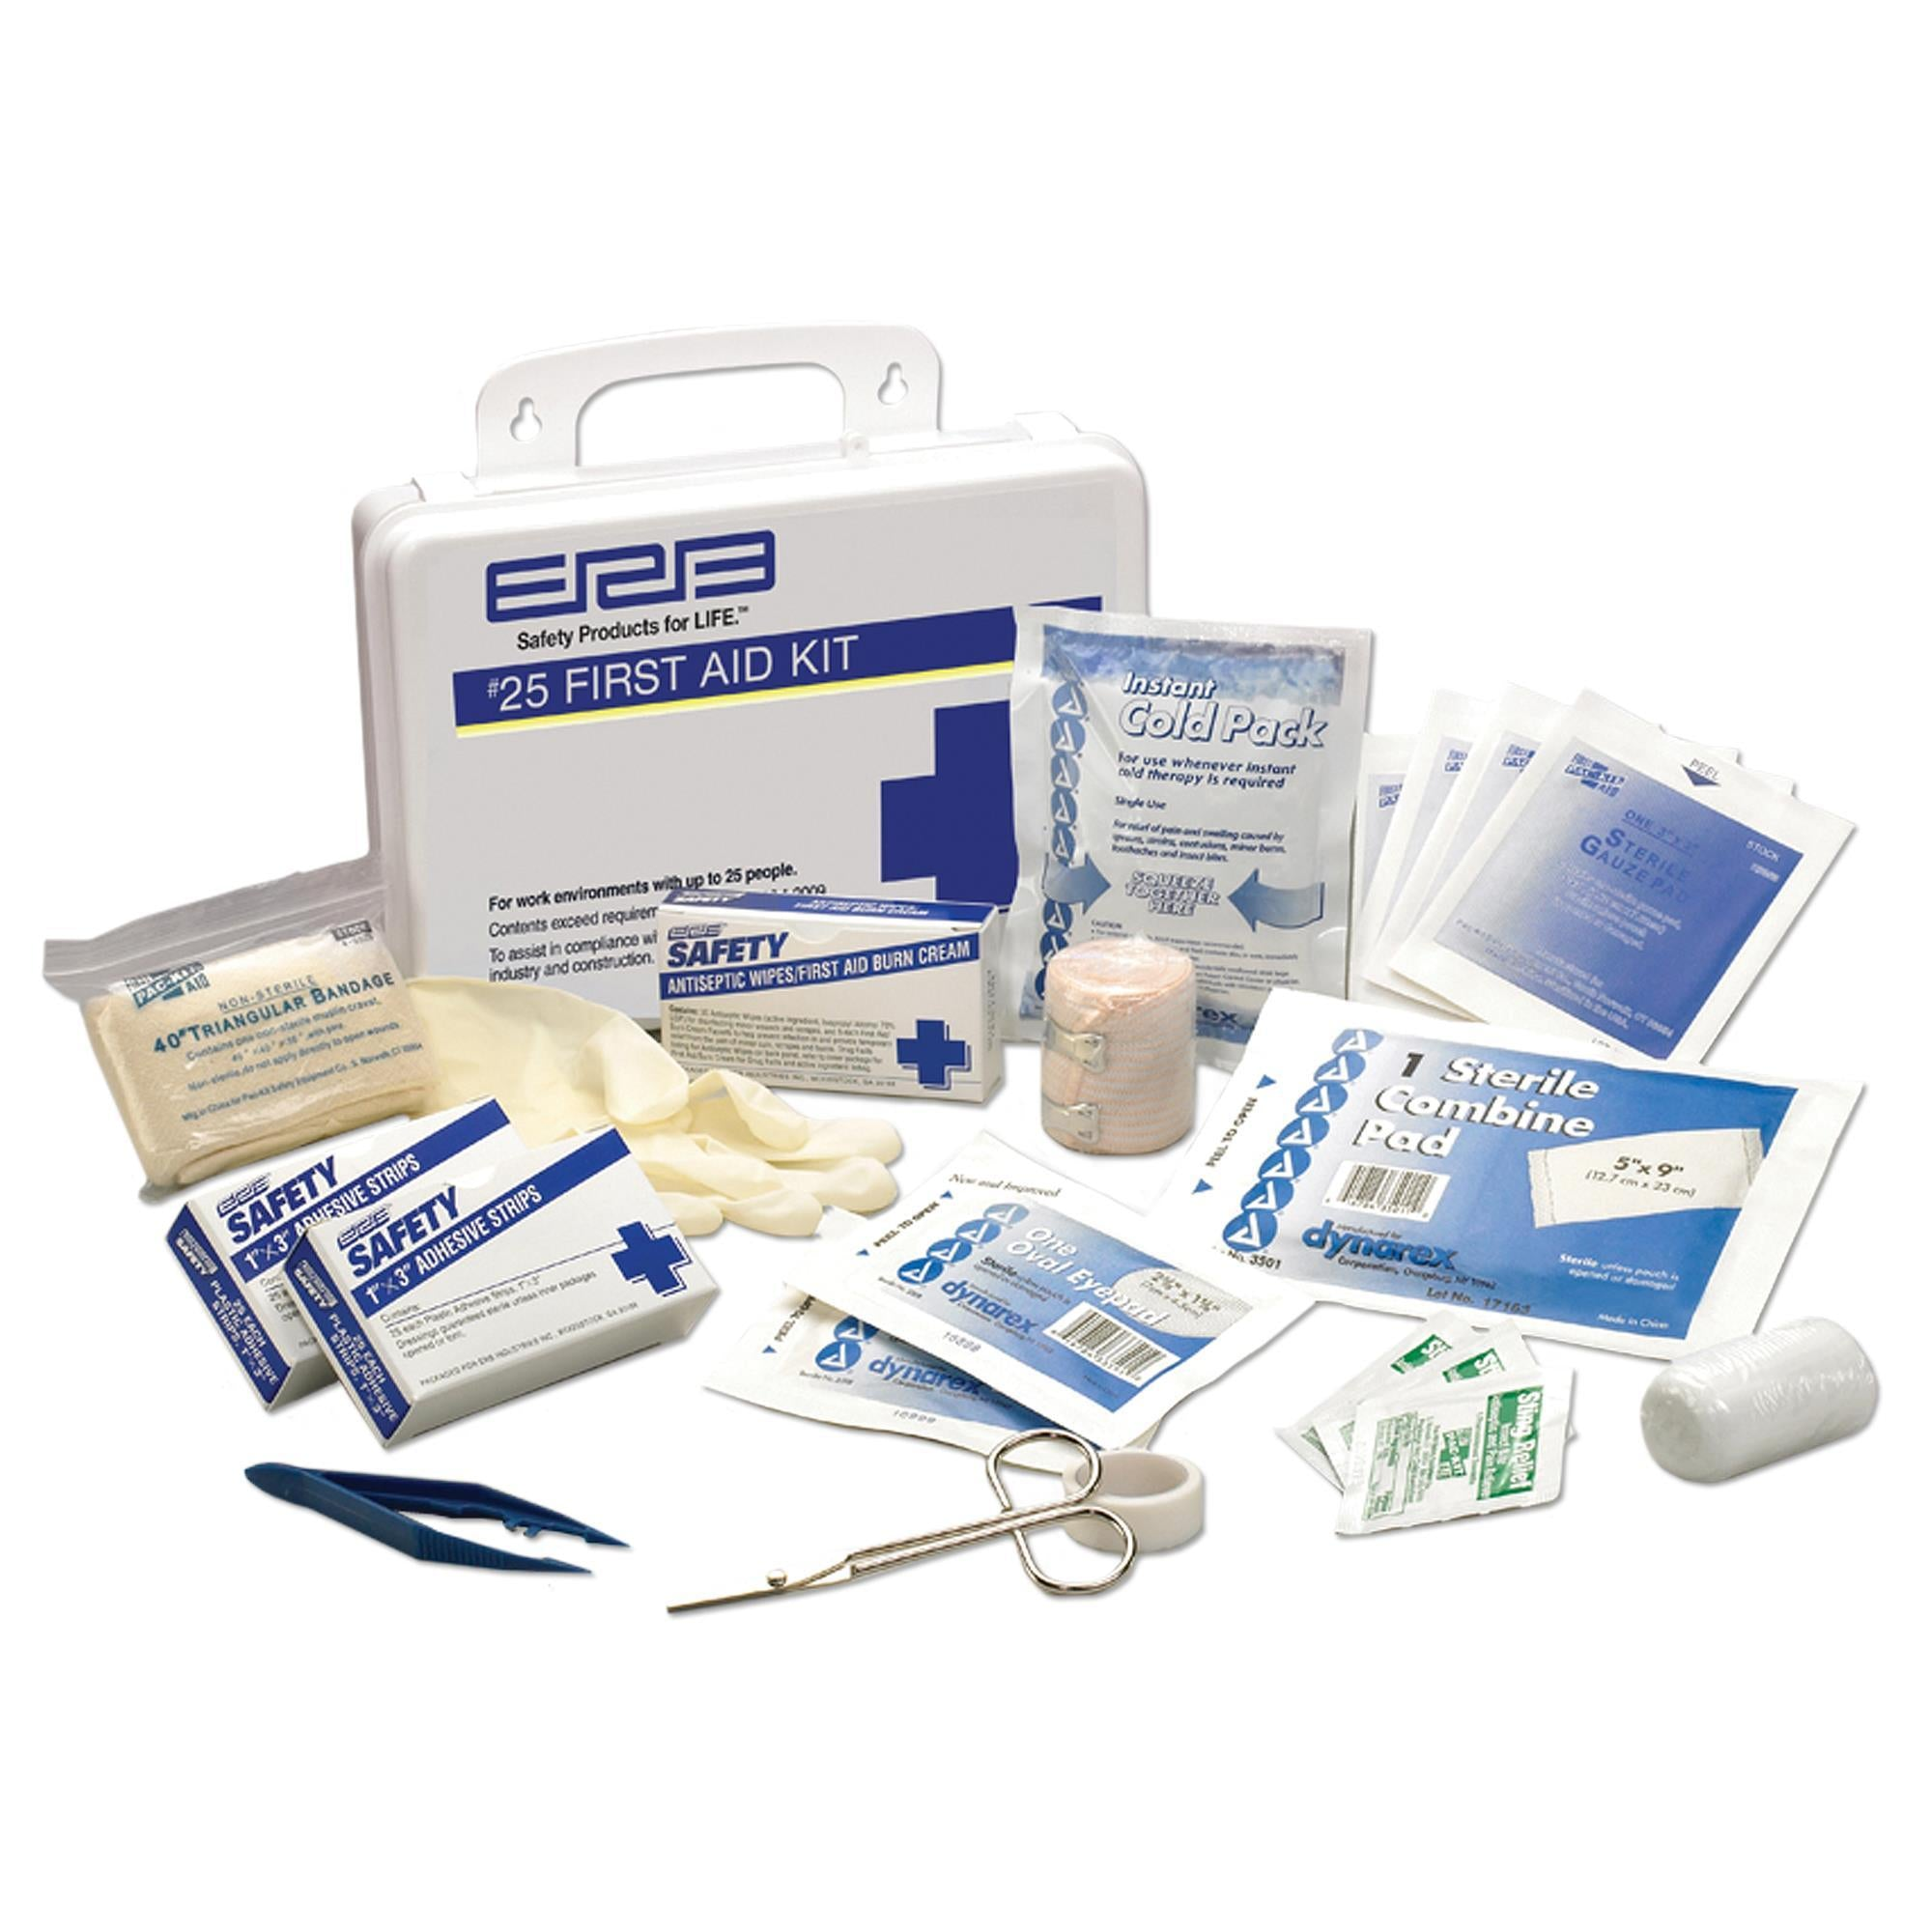 Premium First Aid Kit with Plastic Box 1EACH